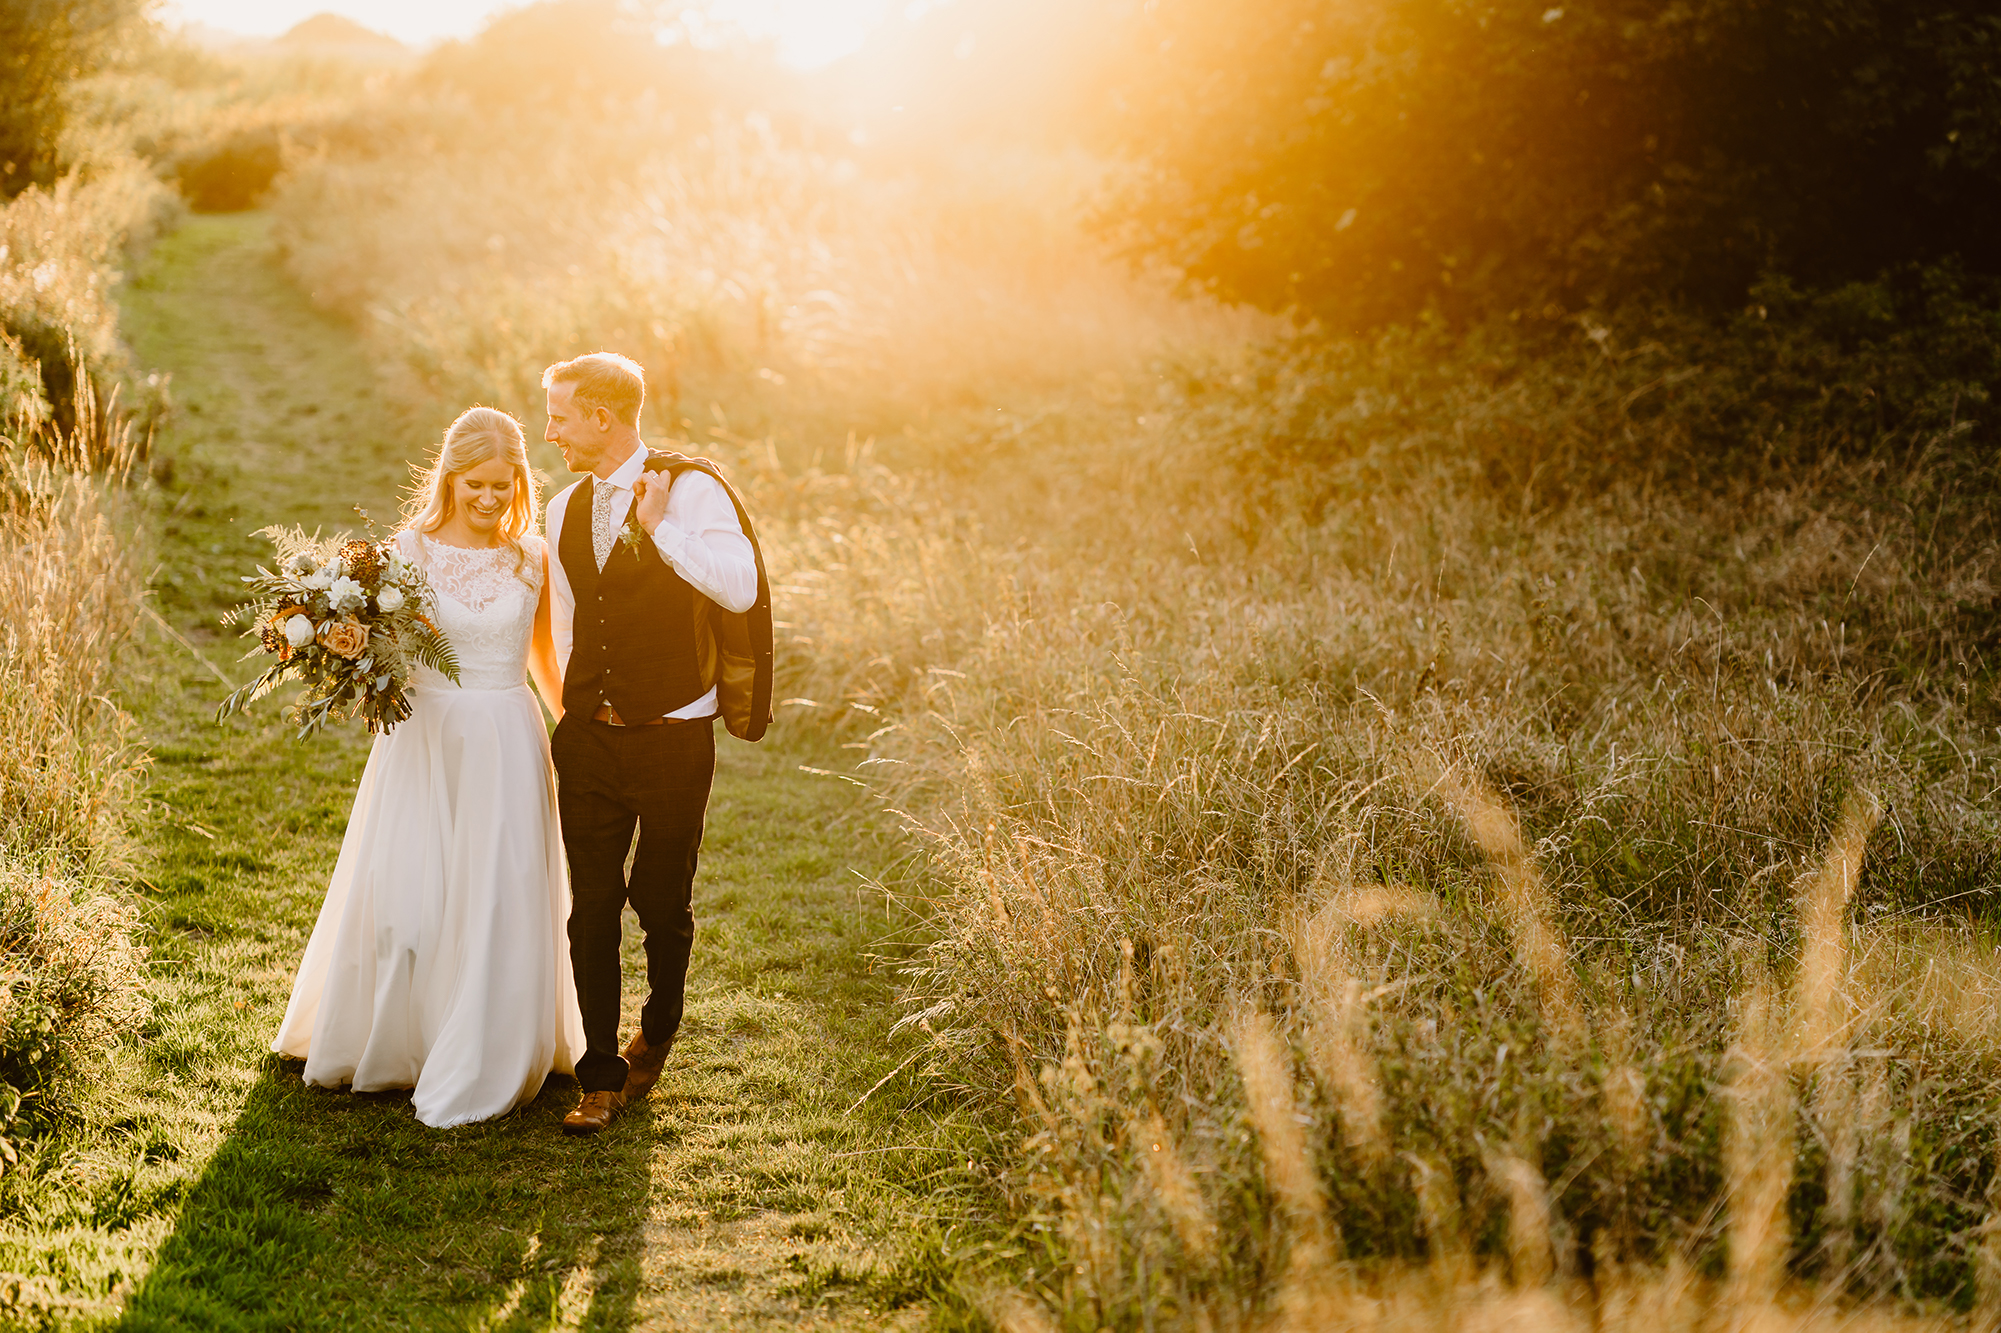 Bride and Groom Holding Hands with Bouquet of Flowers at Sunset